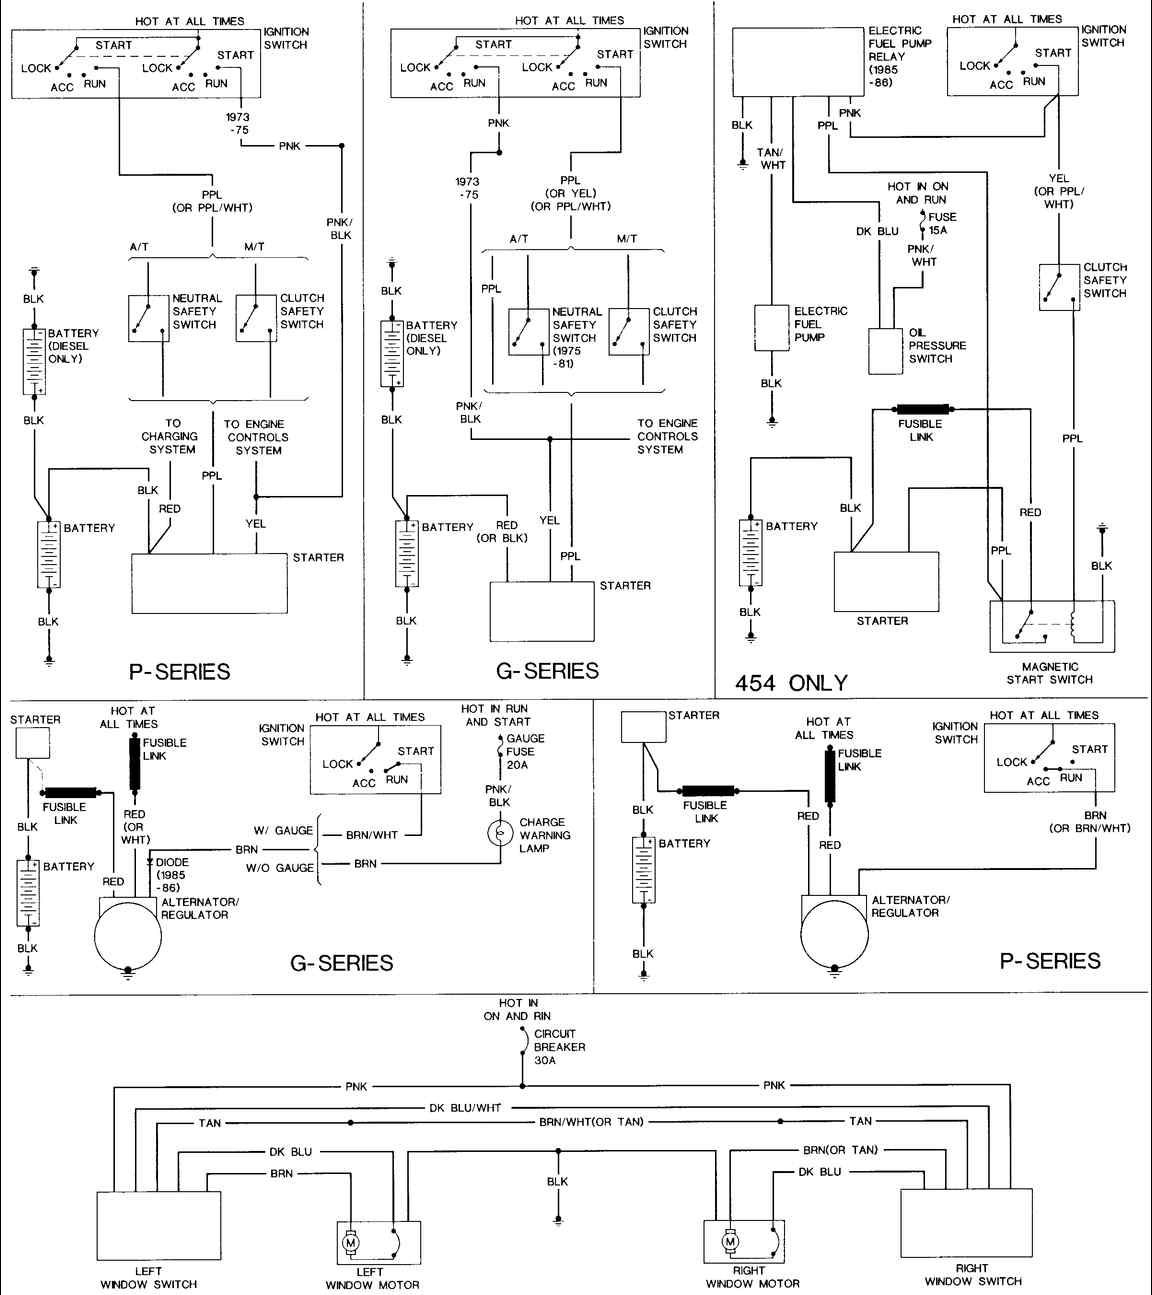 0c73623a181dc376dbb4777e2029d285 85 chevy truck wiring diagram 85 chevy van the steering column 1989 Camaro Steering Column Diagram at bayanpartner.co